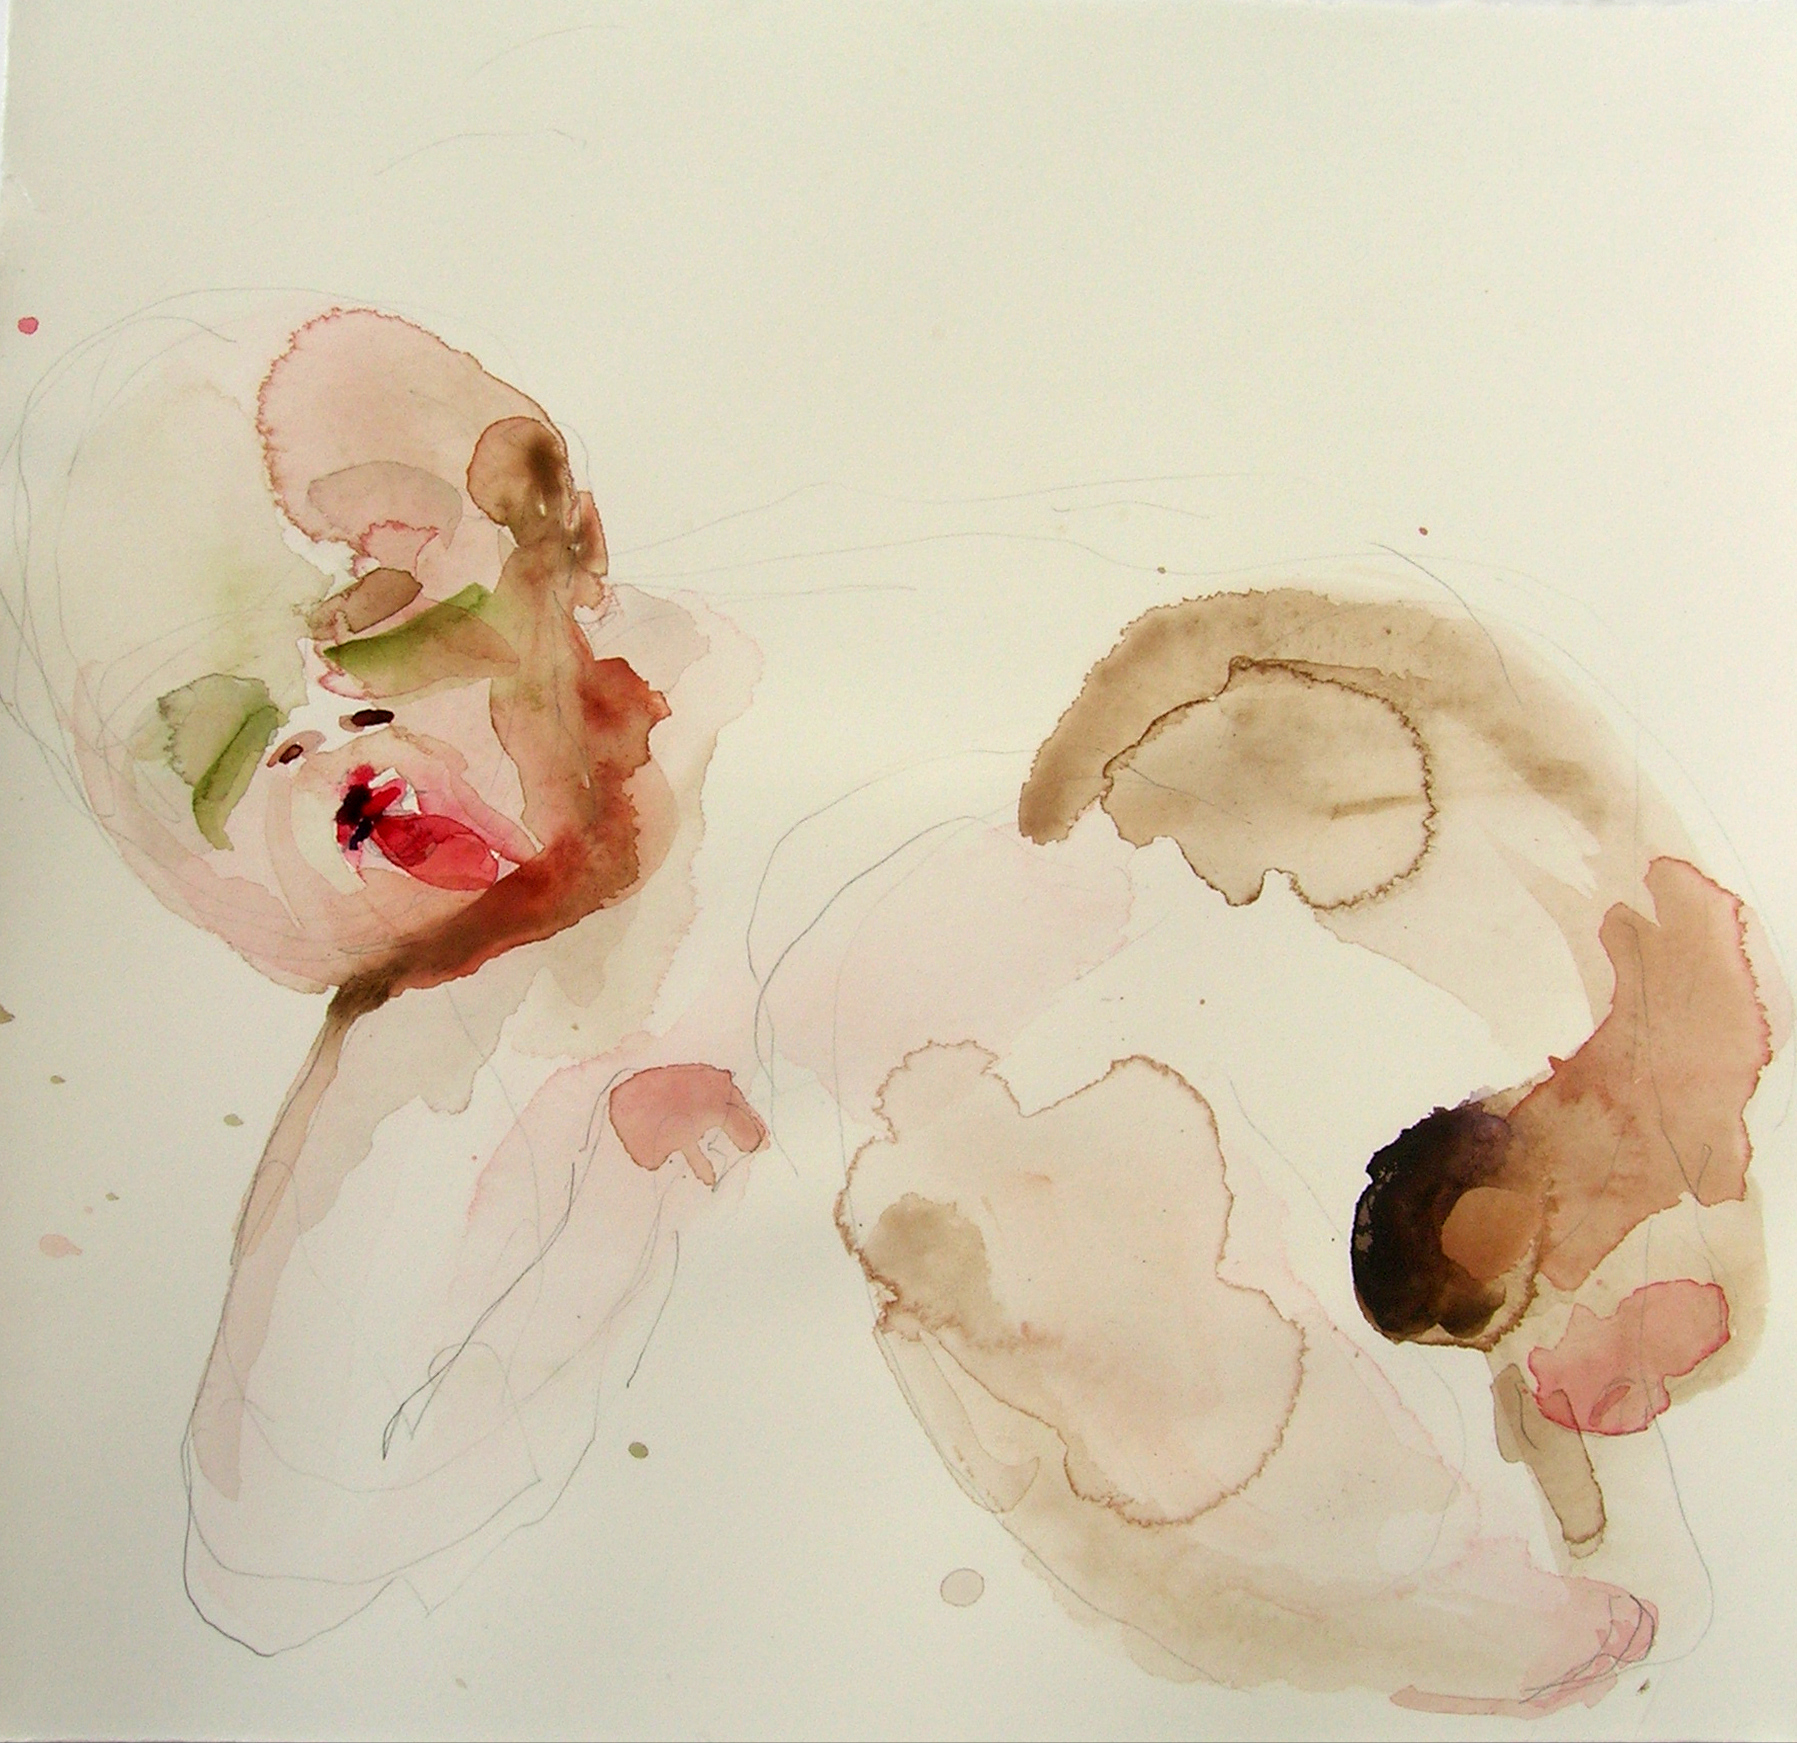 Sentar 14, 2007, Graphite and watercolor on paper, 13 X 12 in.